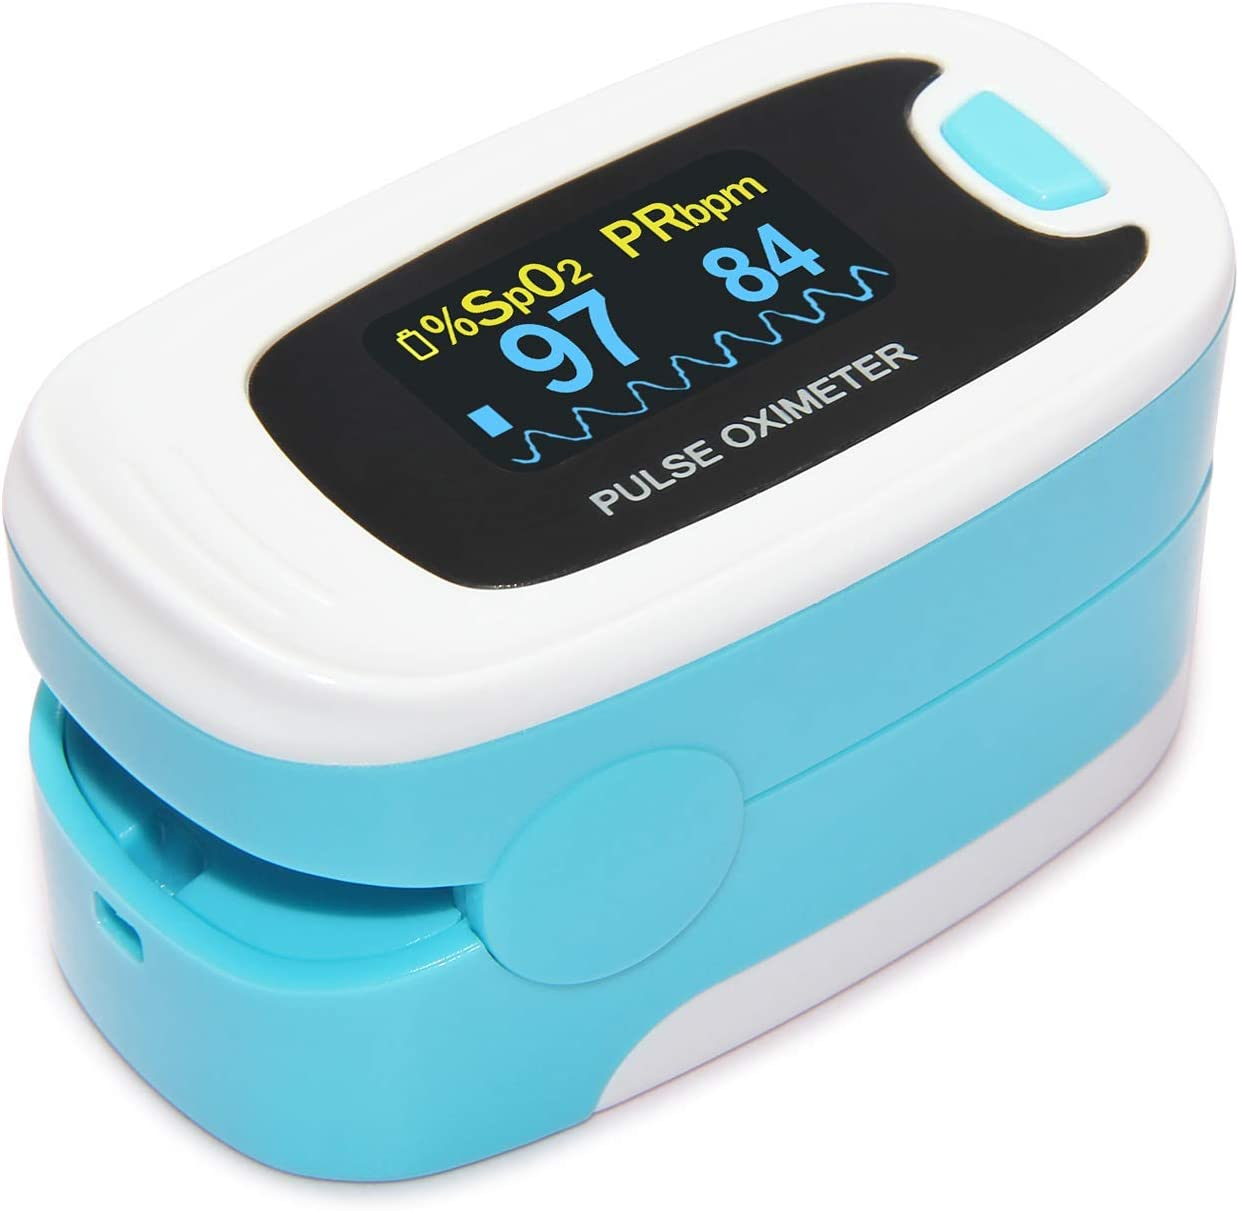 CONTEC OLED CMS50NA Pulse Oximeter